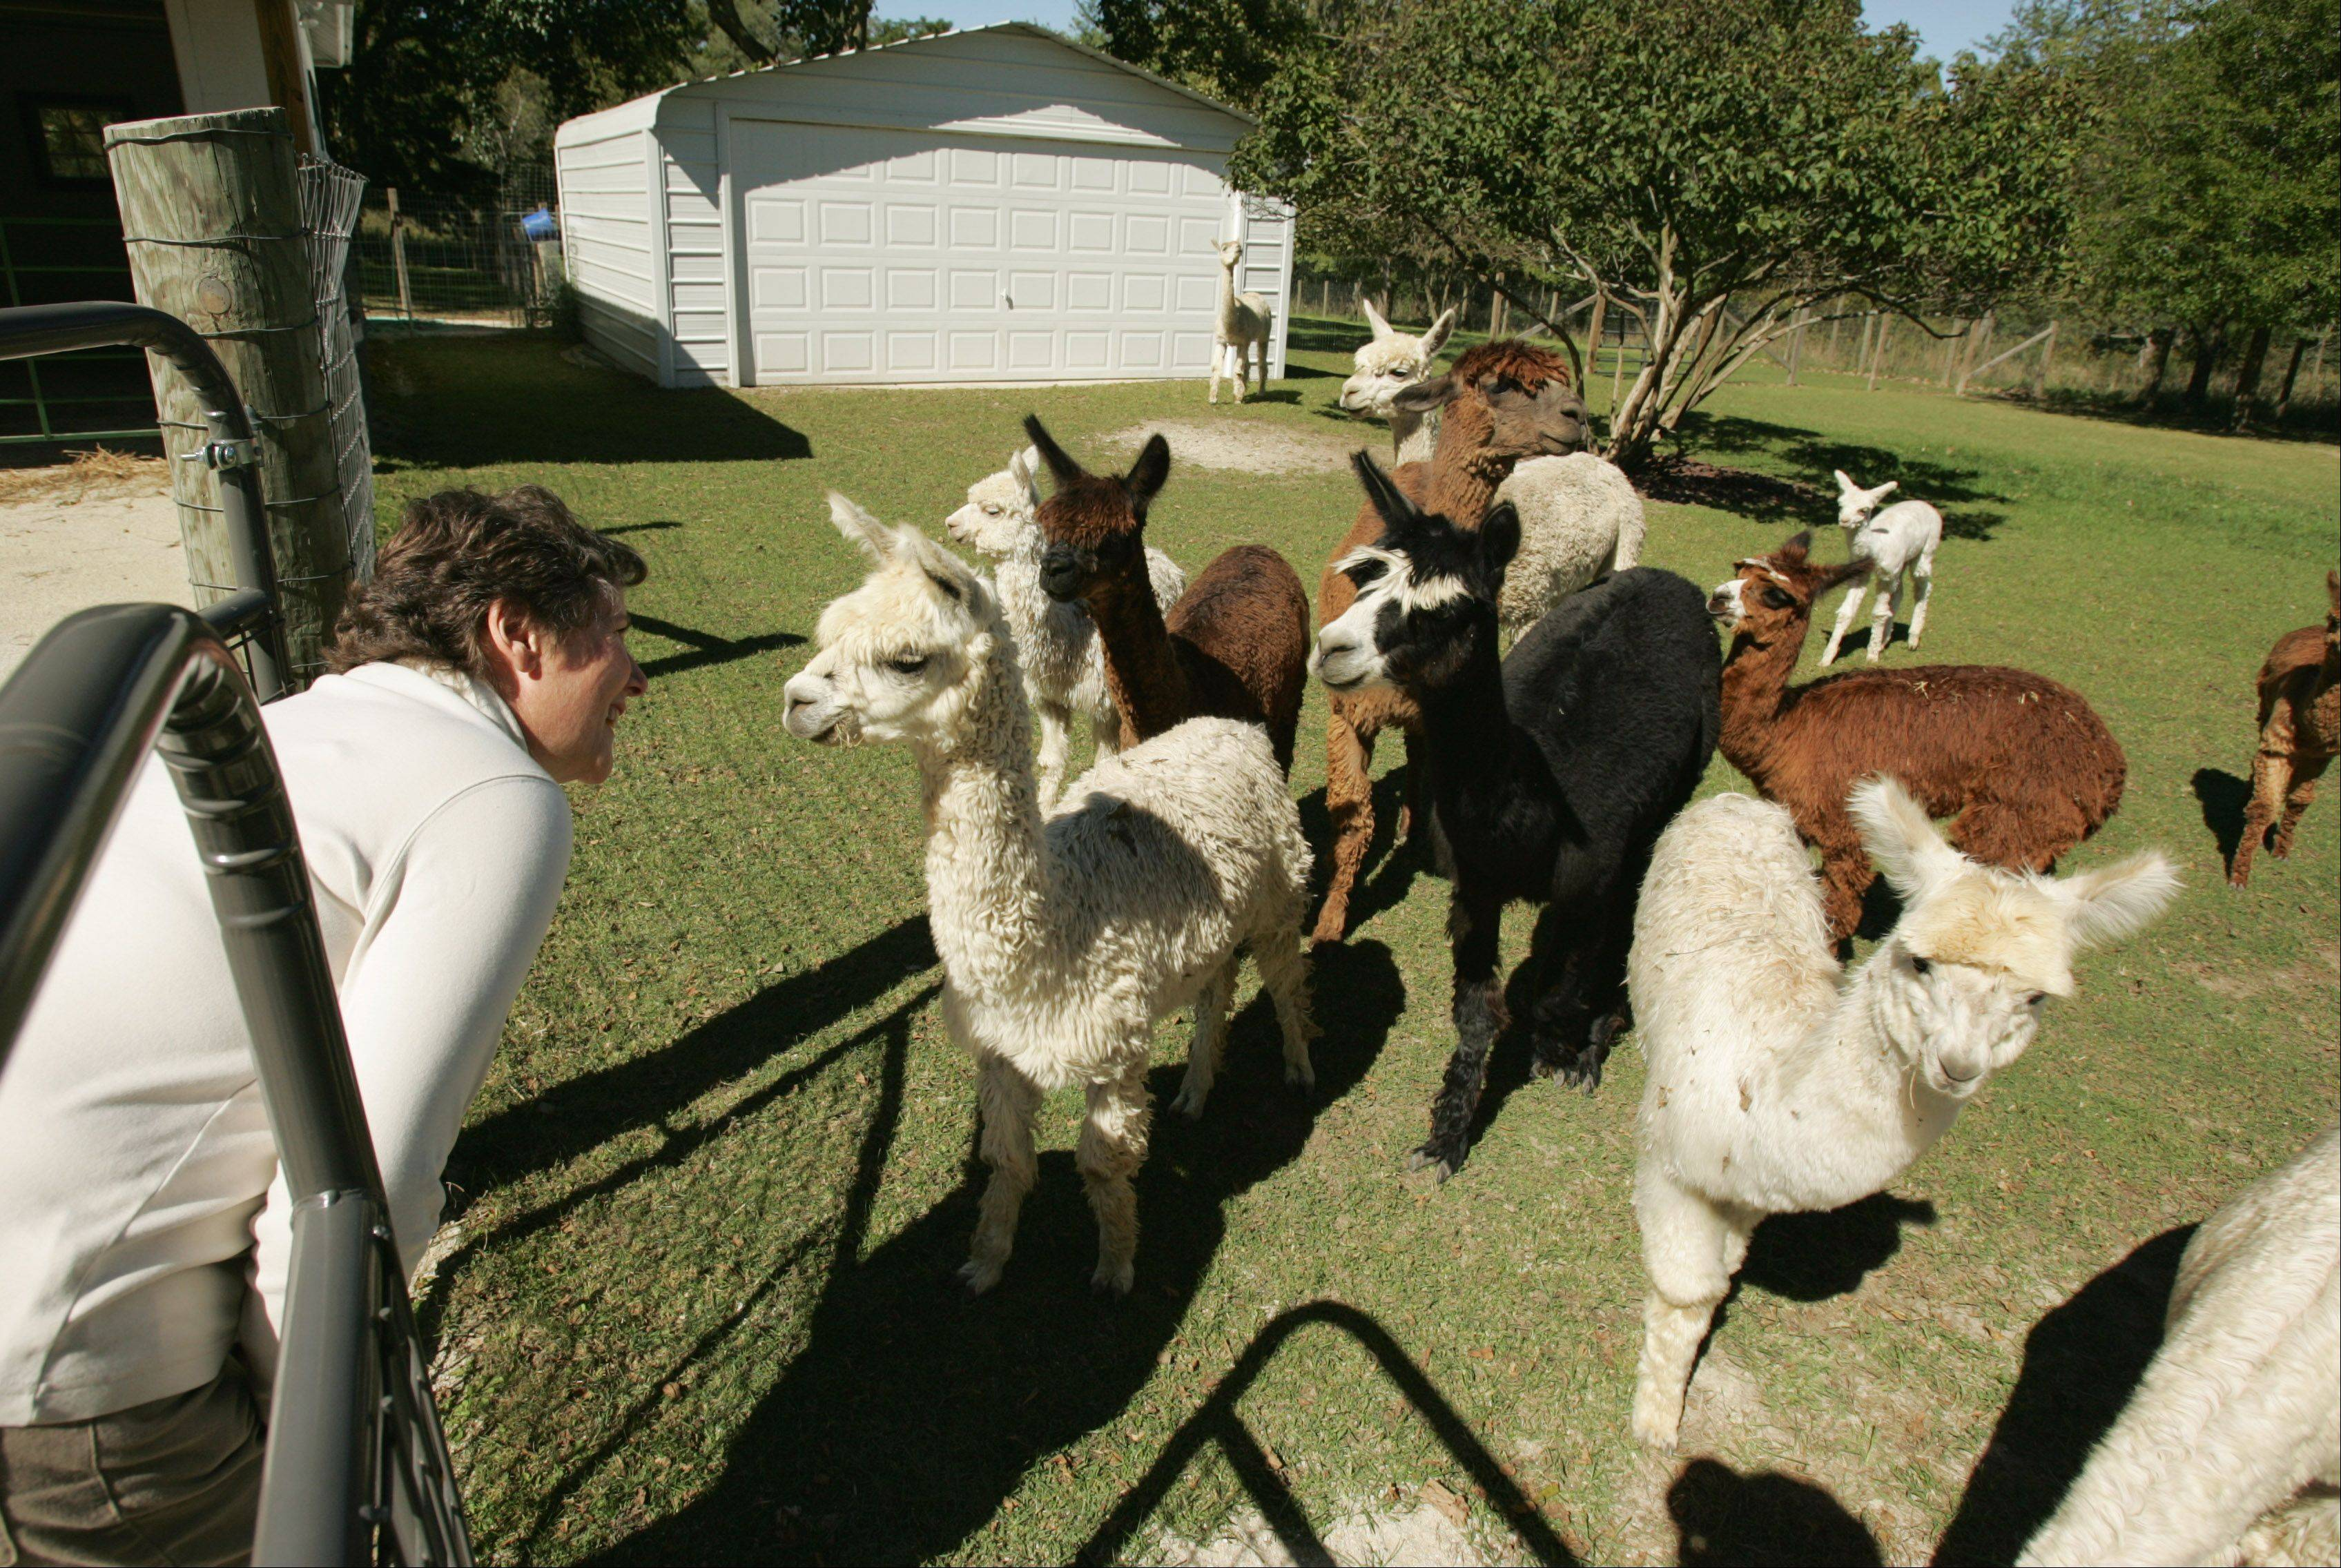 Susan Waldron greets some of her many alpacas on the farm she owns with her husband Ron in Campton Hills. She says alpacas are gentle and somewhat shy and not difficult to raise.